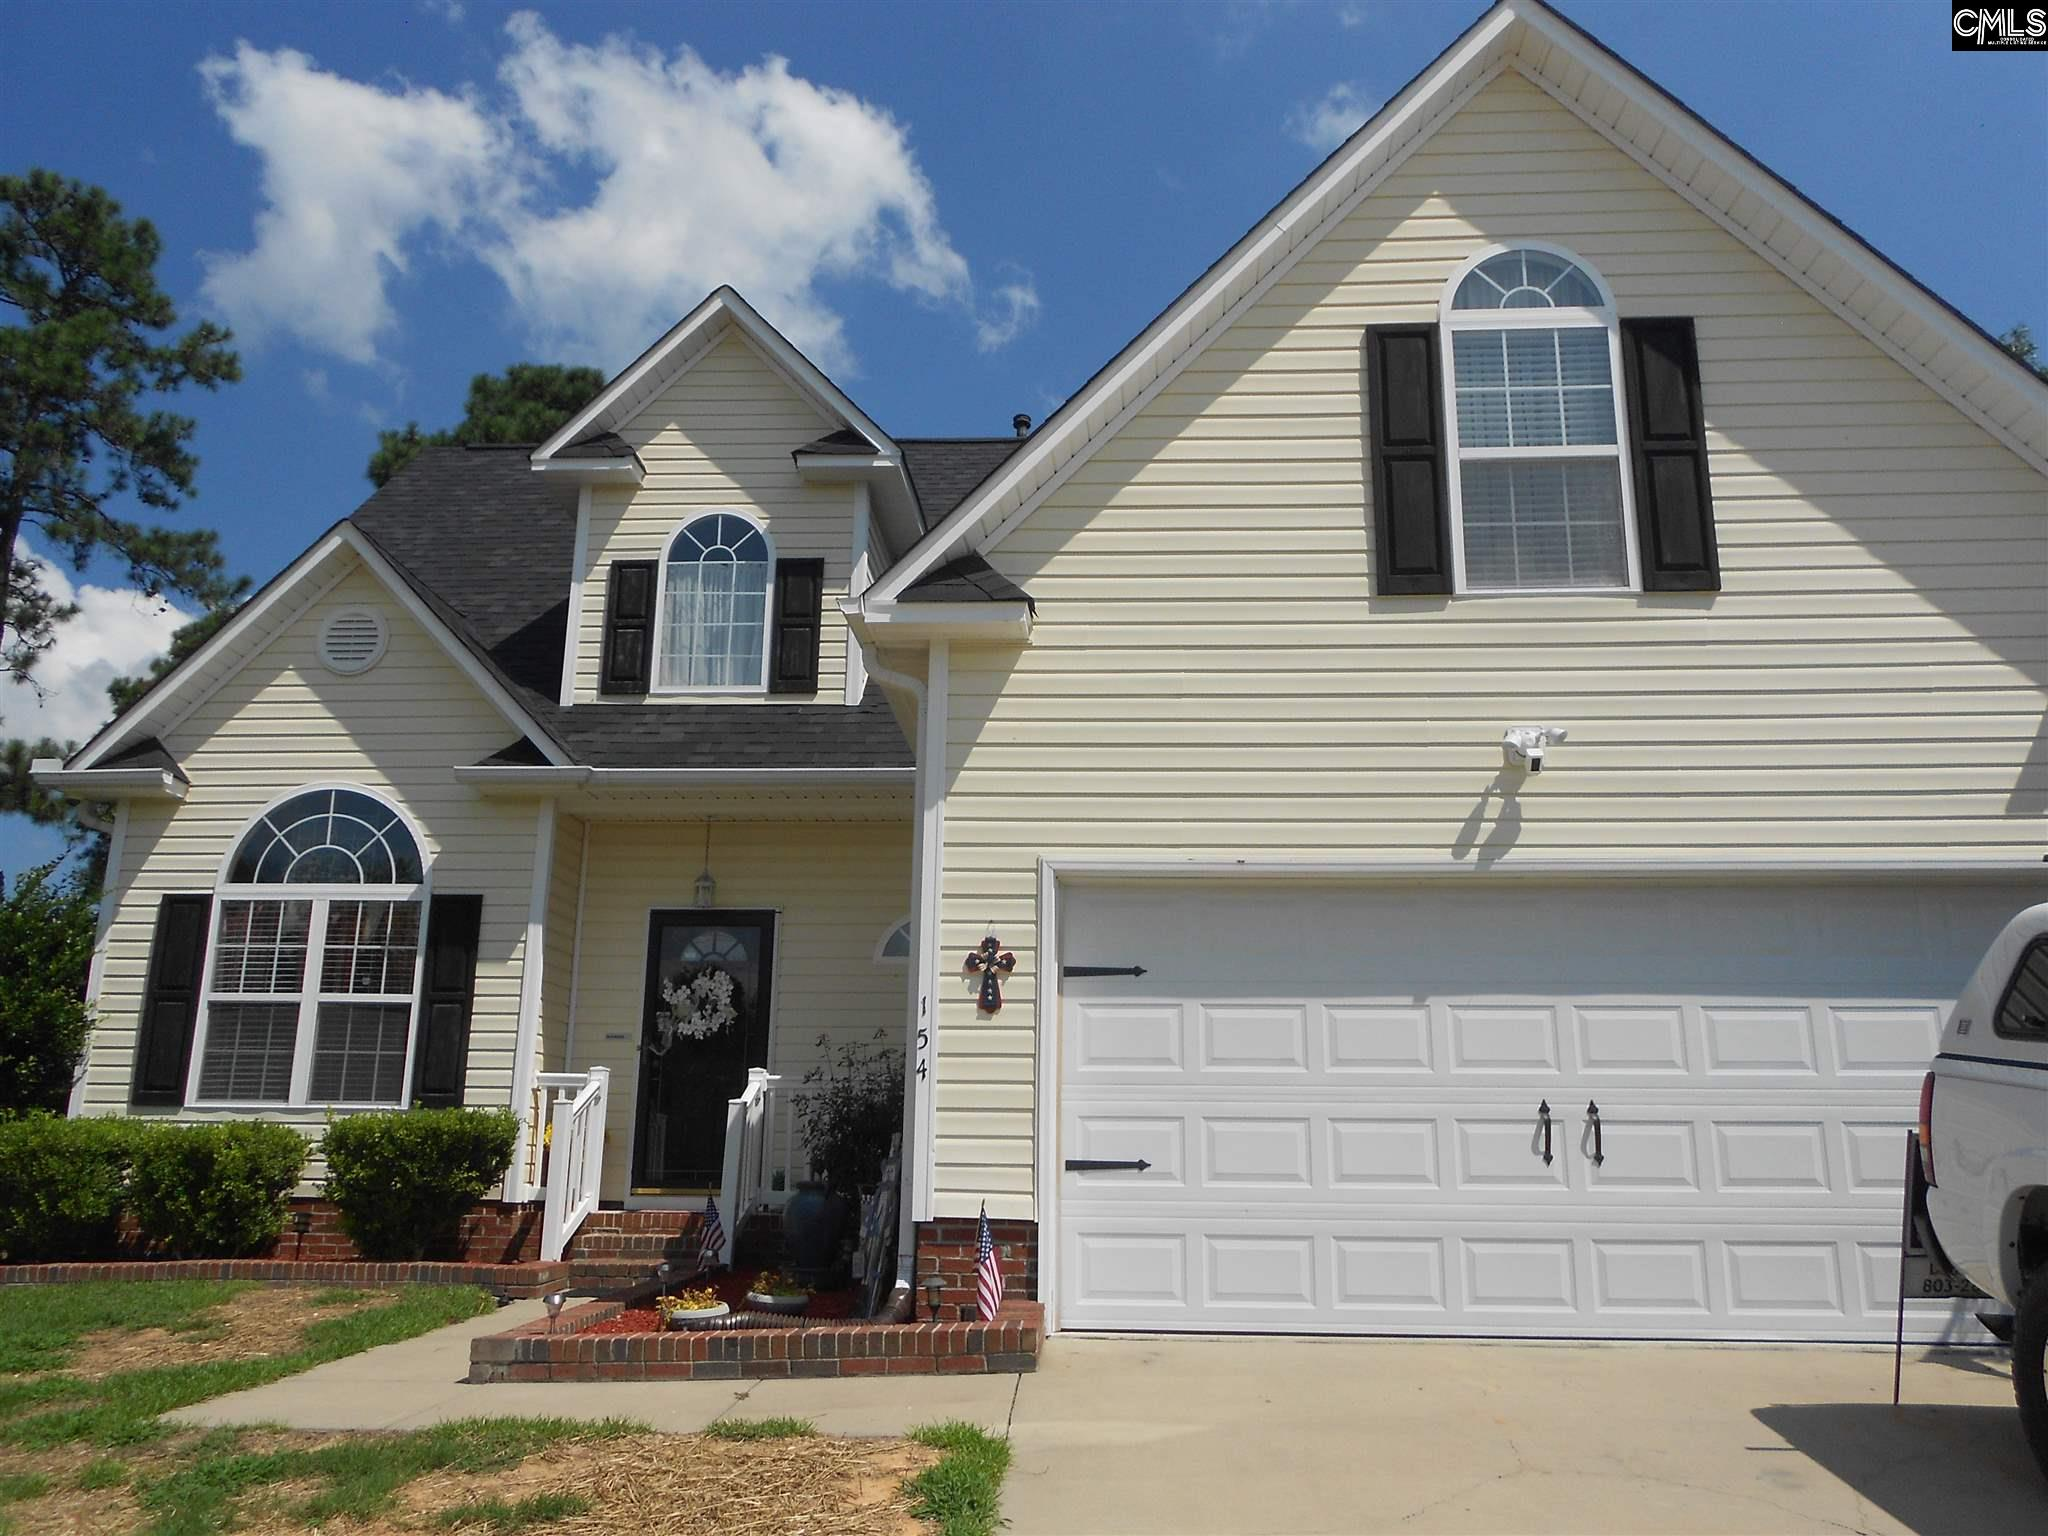 154 Summer Pines Blythewood, SC 29016